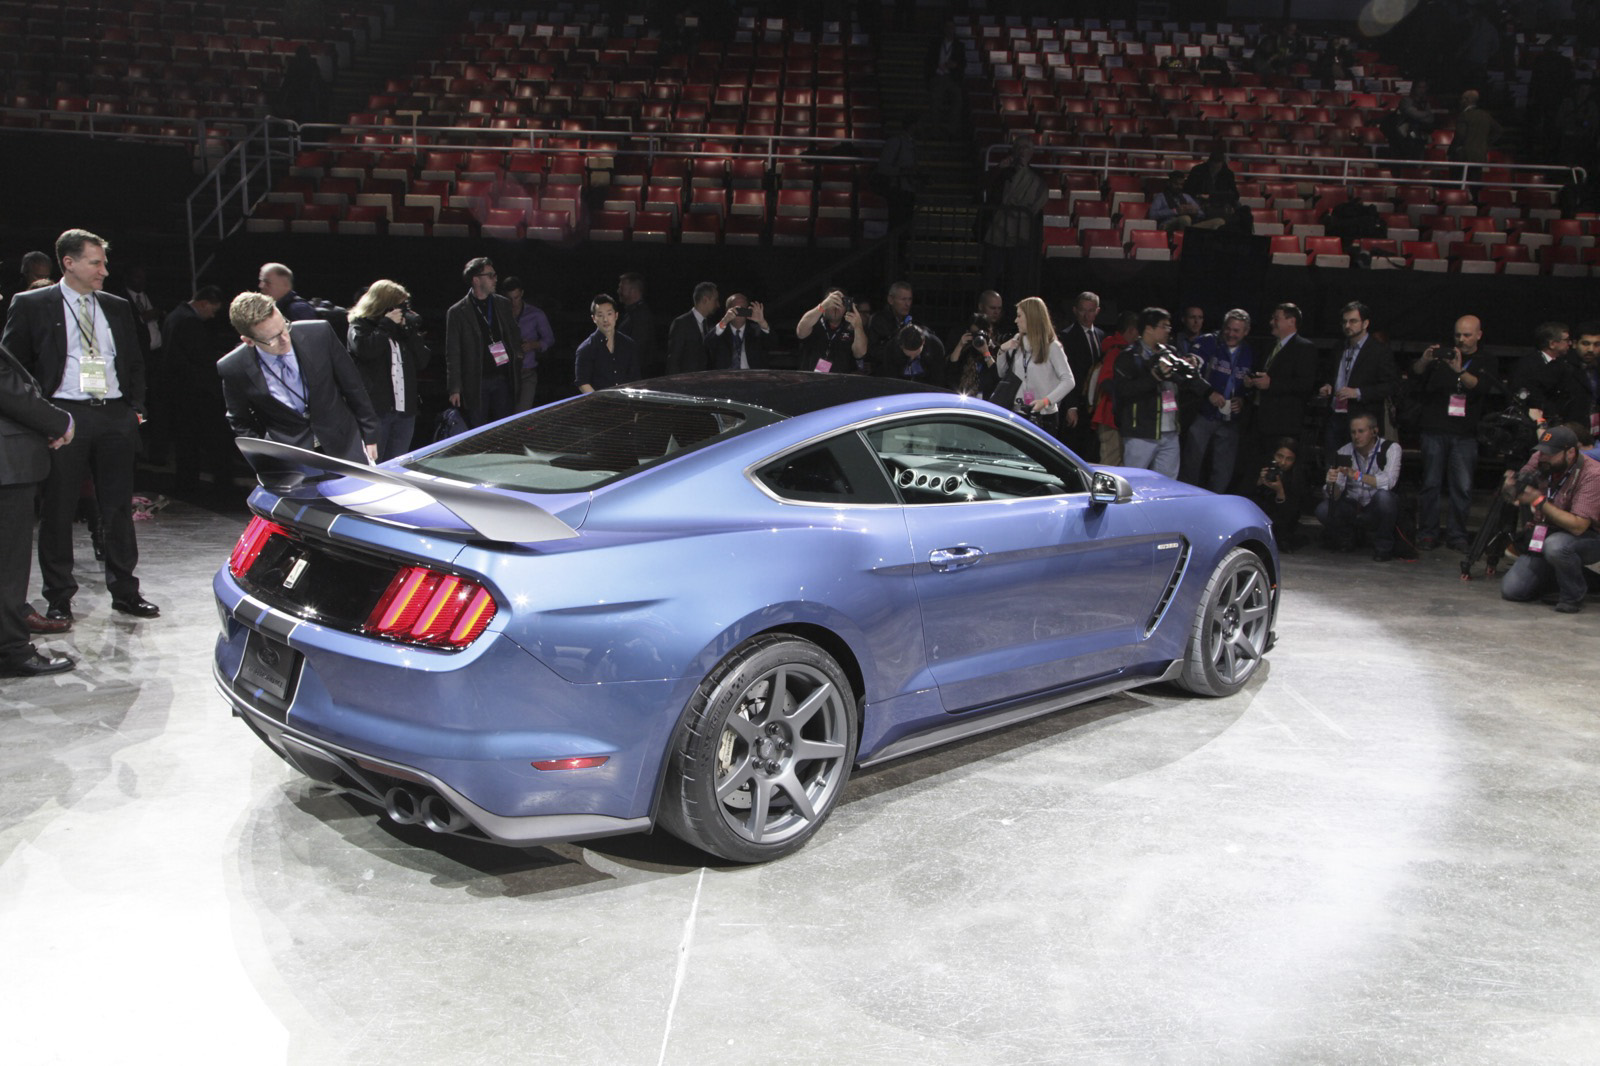 2016 ford shelby gt350r mustang gallery 612599 top speed. Black Bedroom Furniture Sets. Home Design Ideas